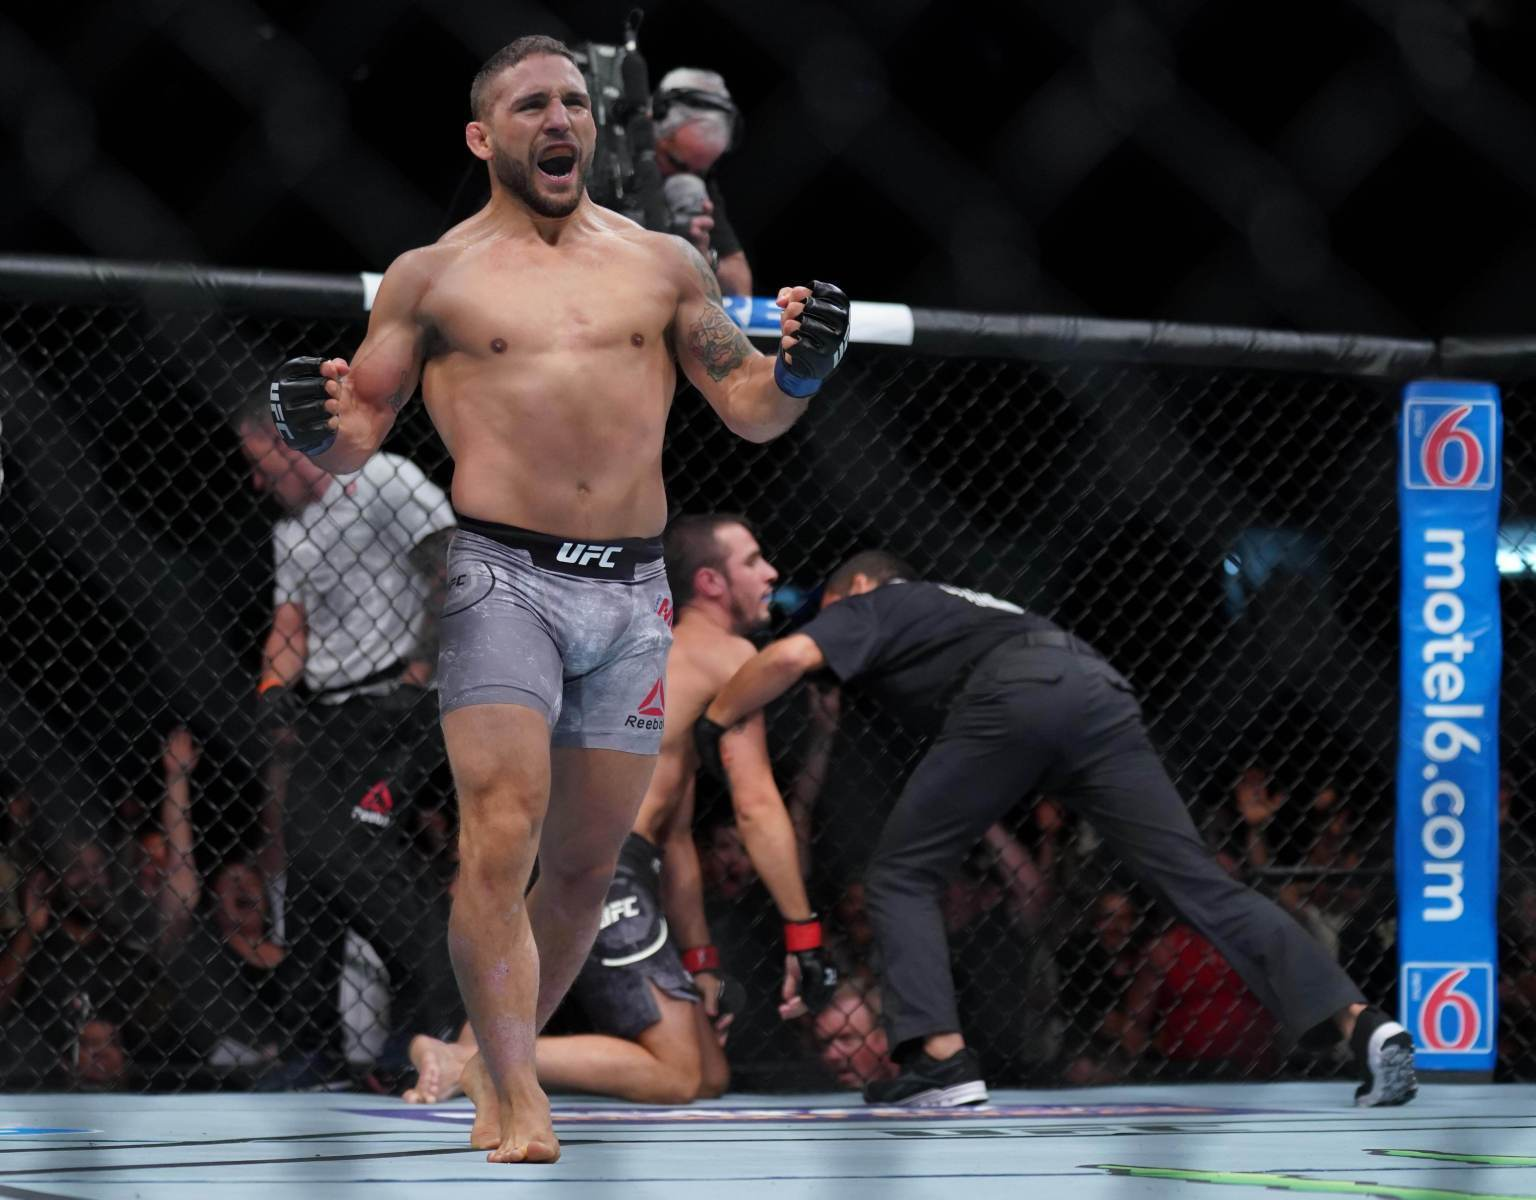 Chad Mendes ends retirement and signs with BKFC